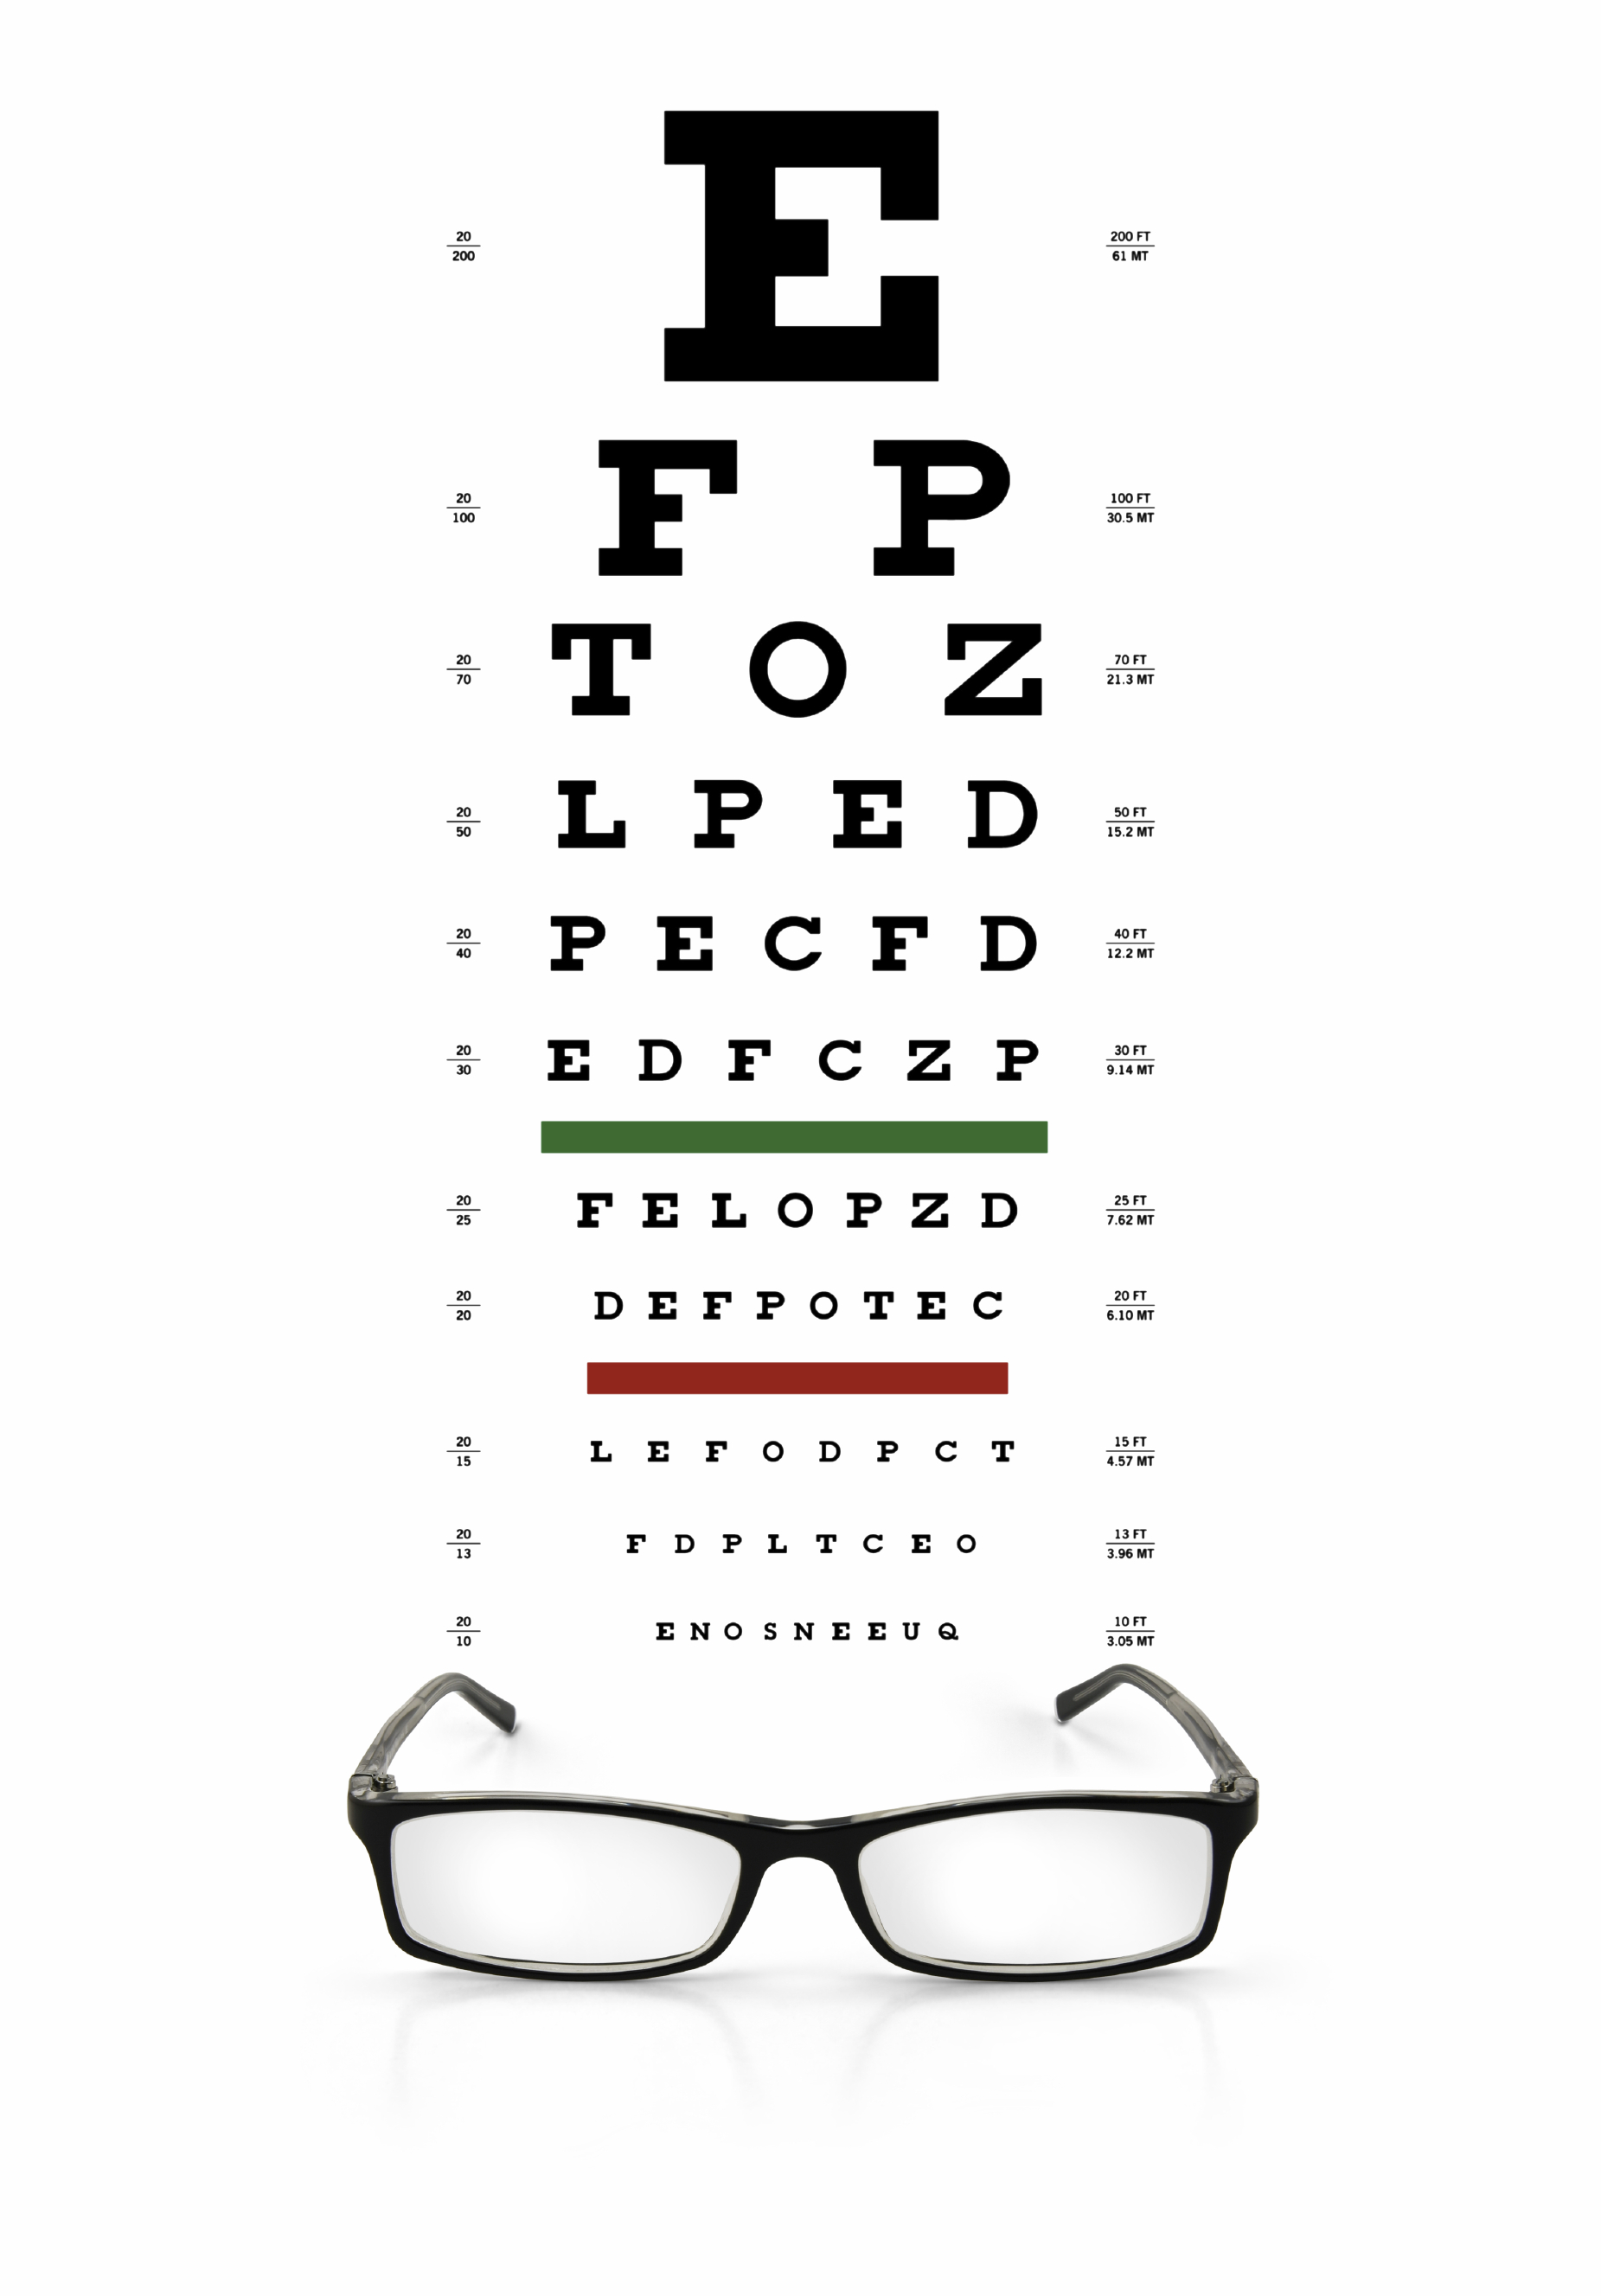 8602ebdfab1 Understanding Your Eyeglass Prescription - Discovery Eye Foundation